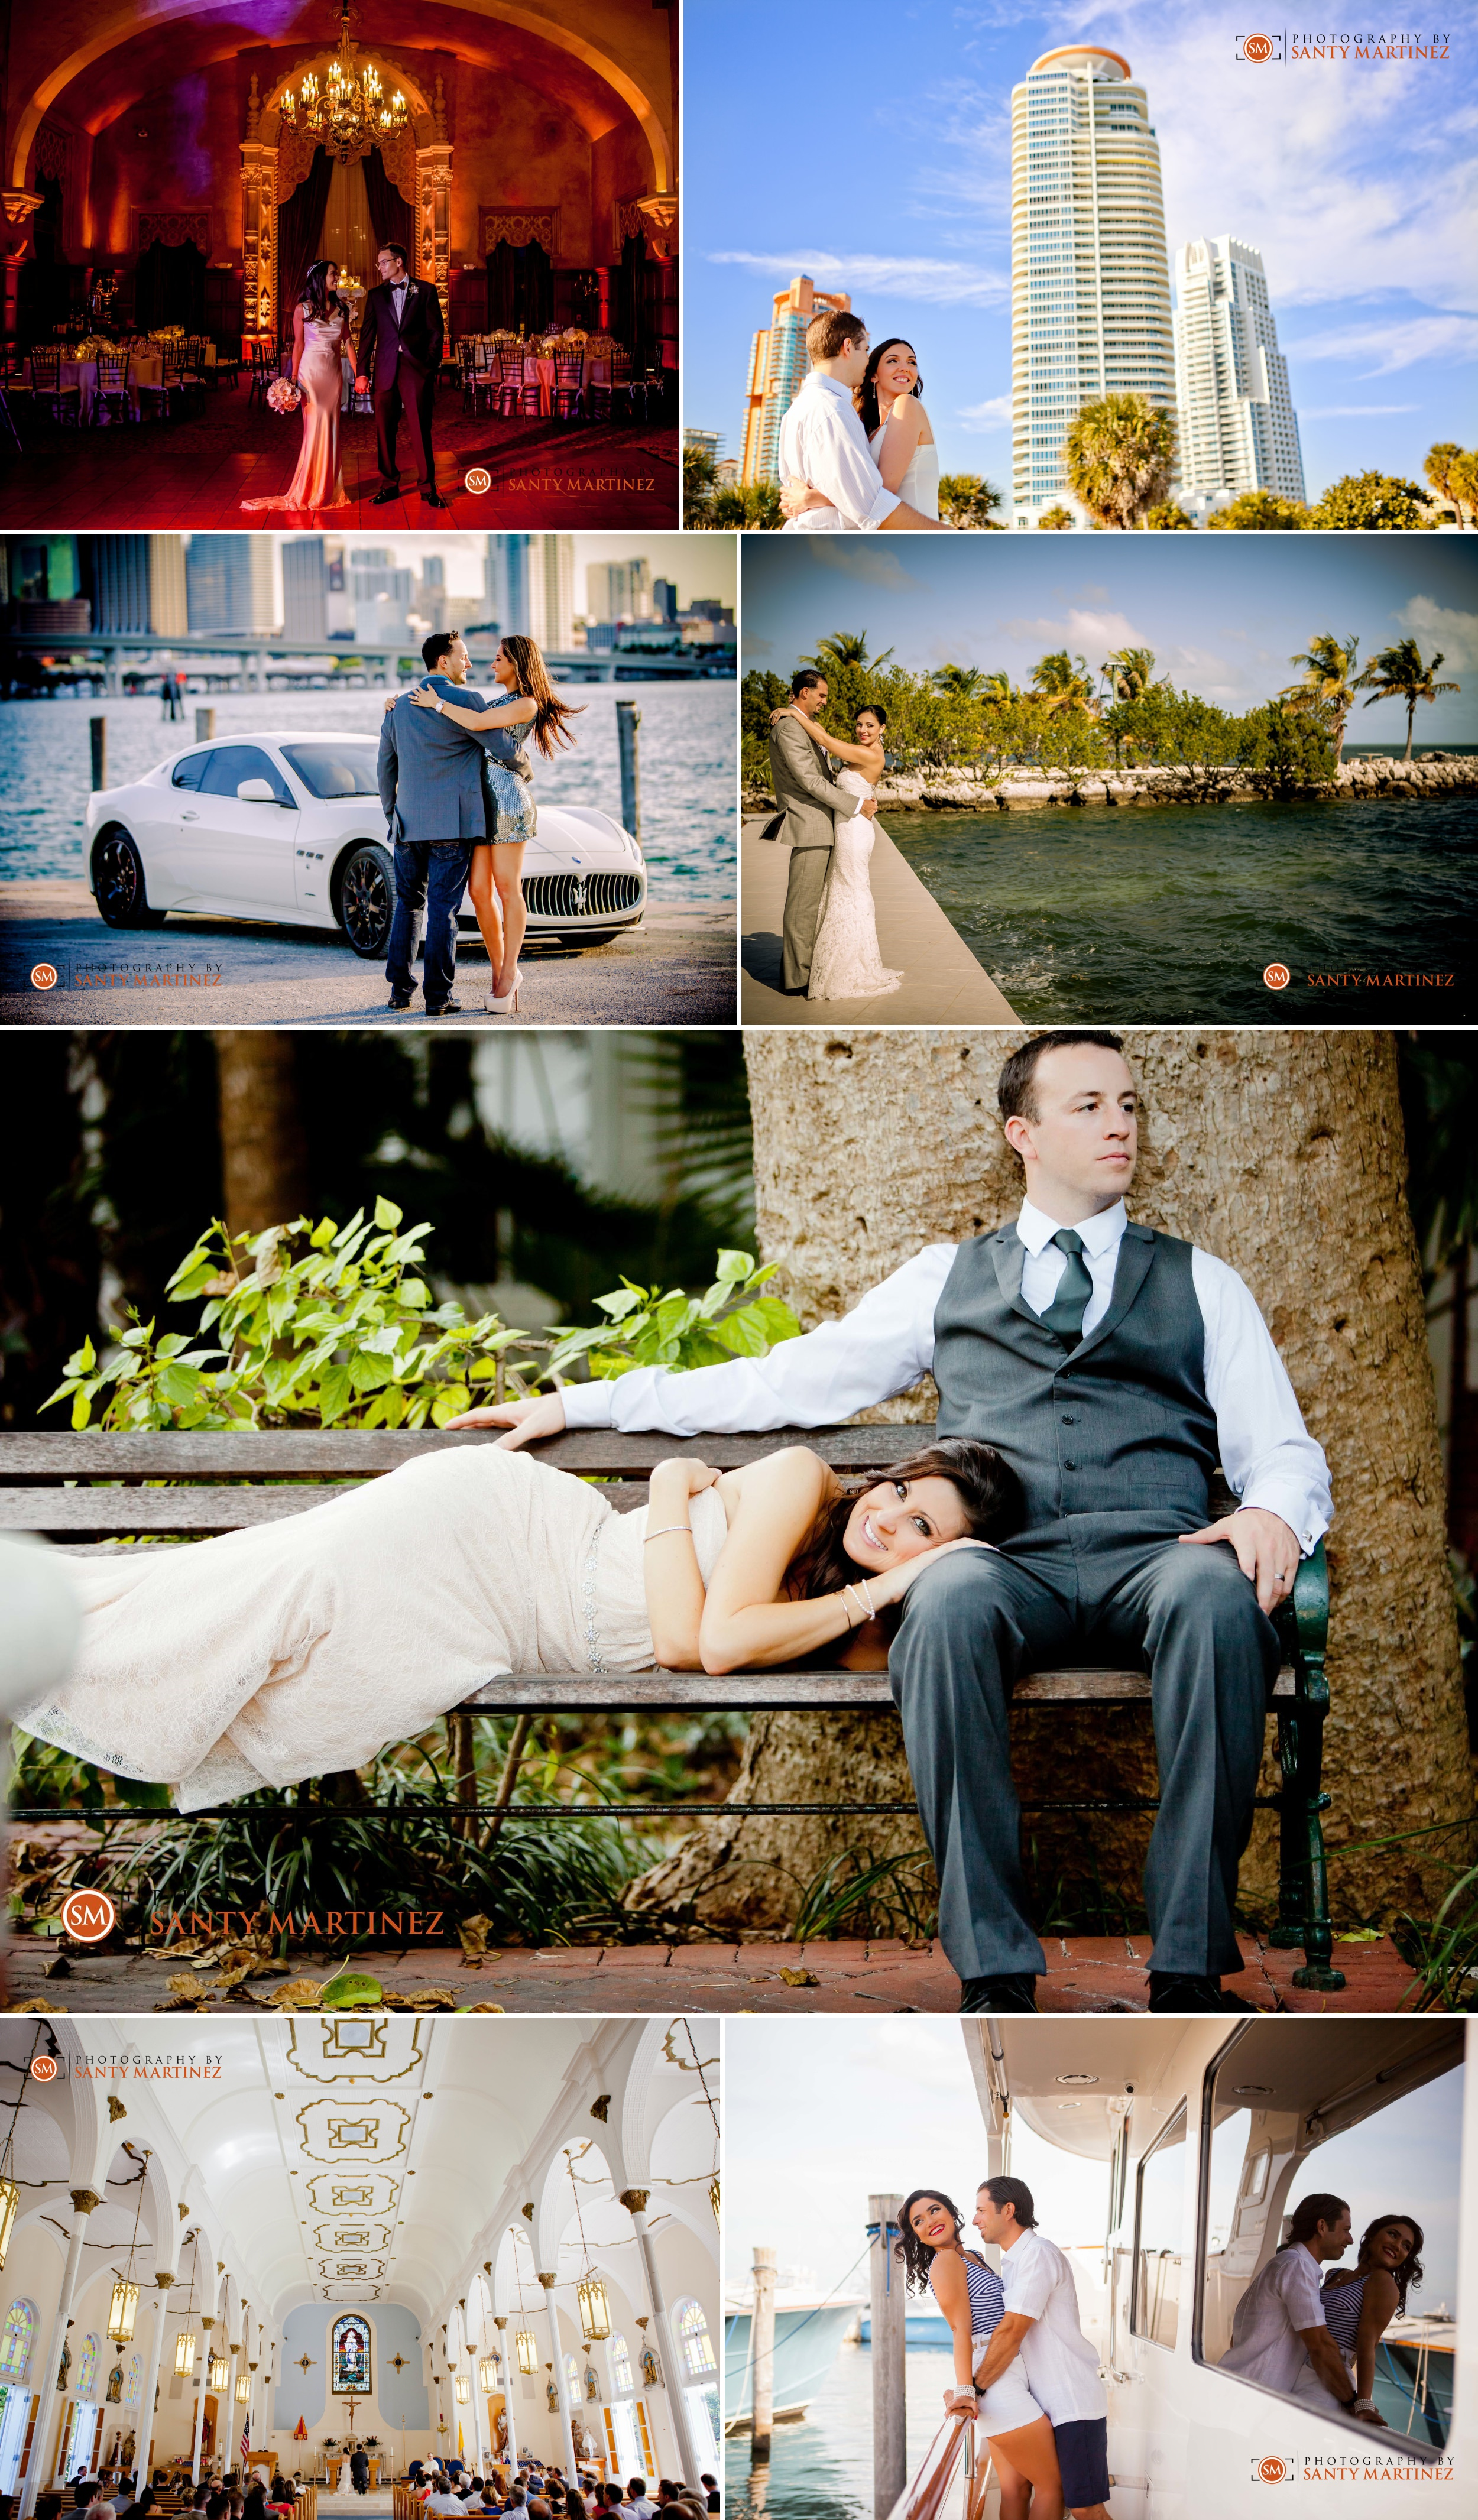 Santy Martinez - Photography - Miami Wedding Photographers 6.jpg